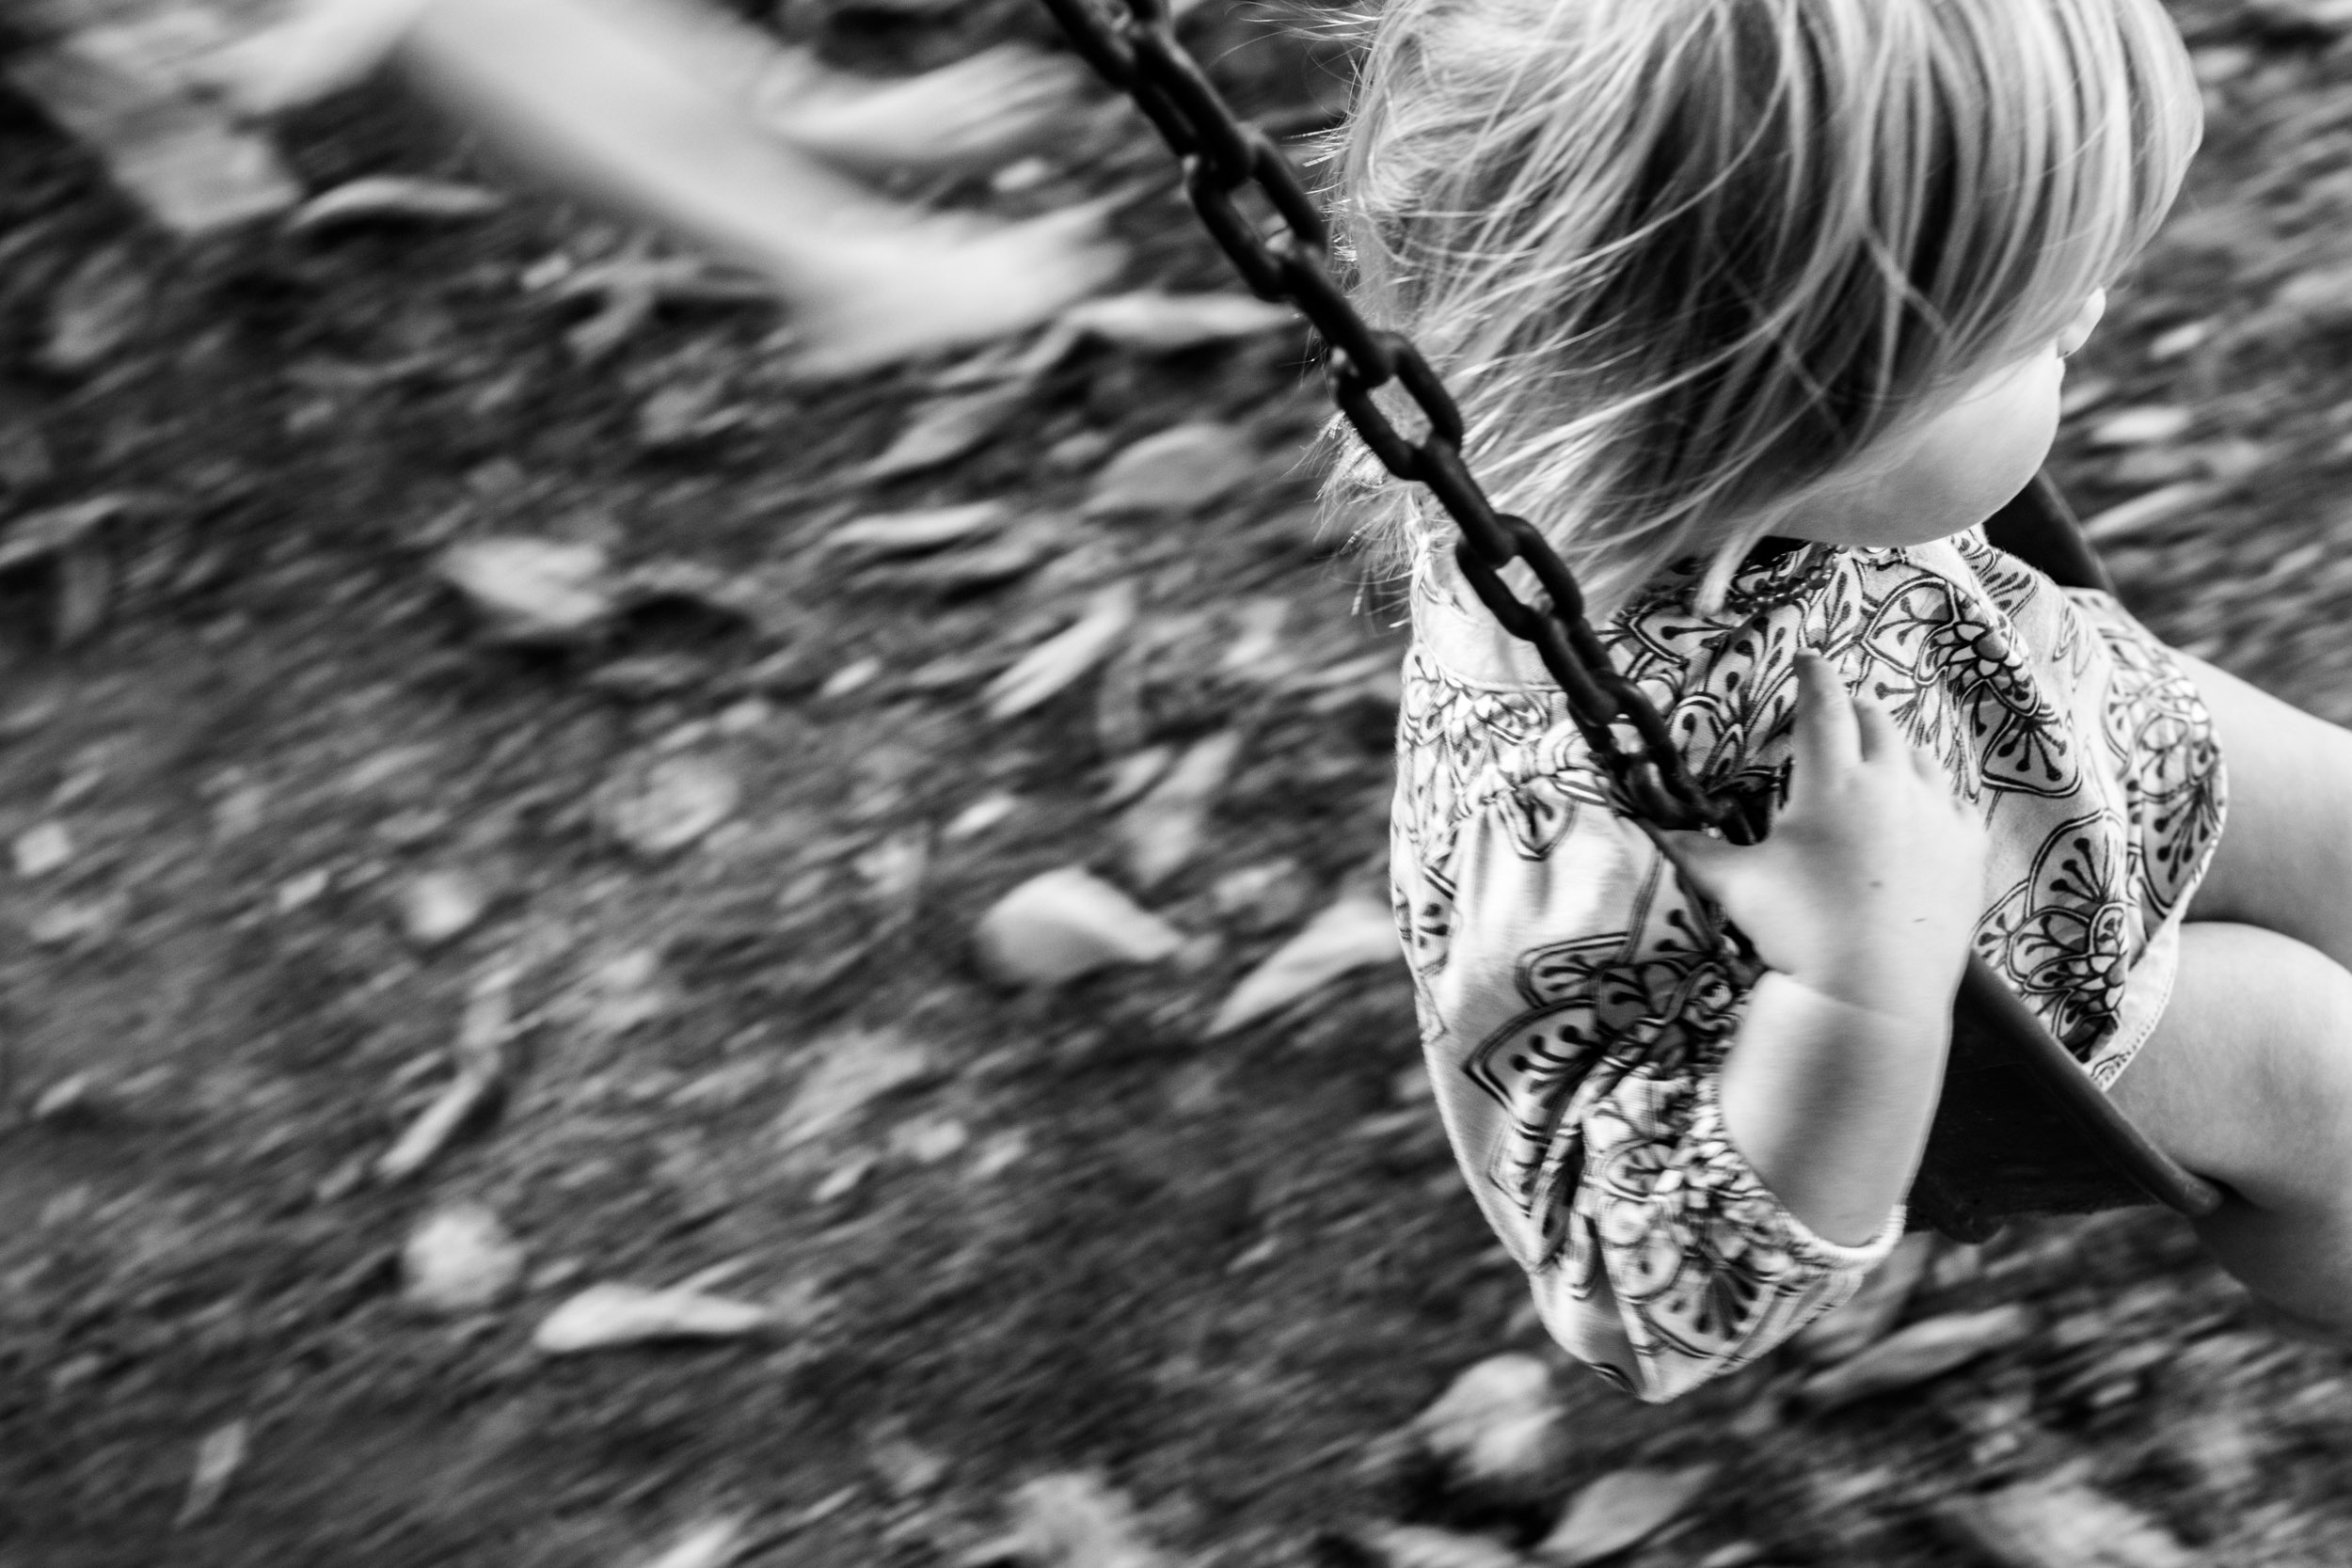 sisters-swinging-blurry-1021517.jpg